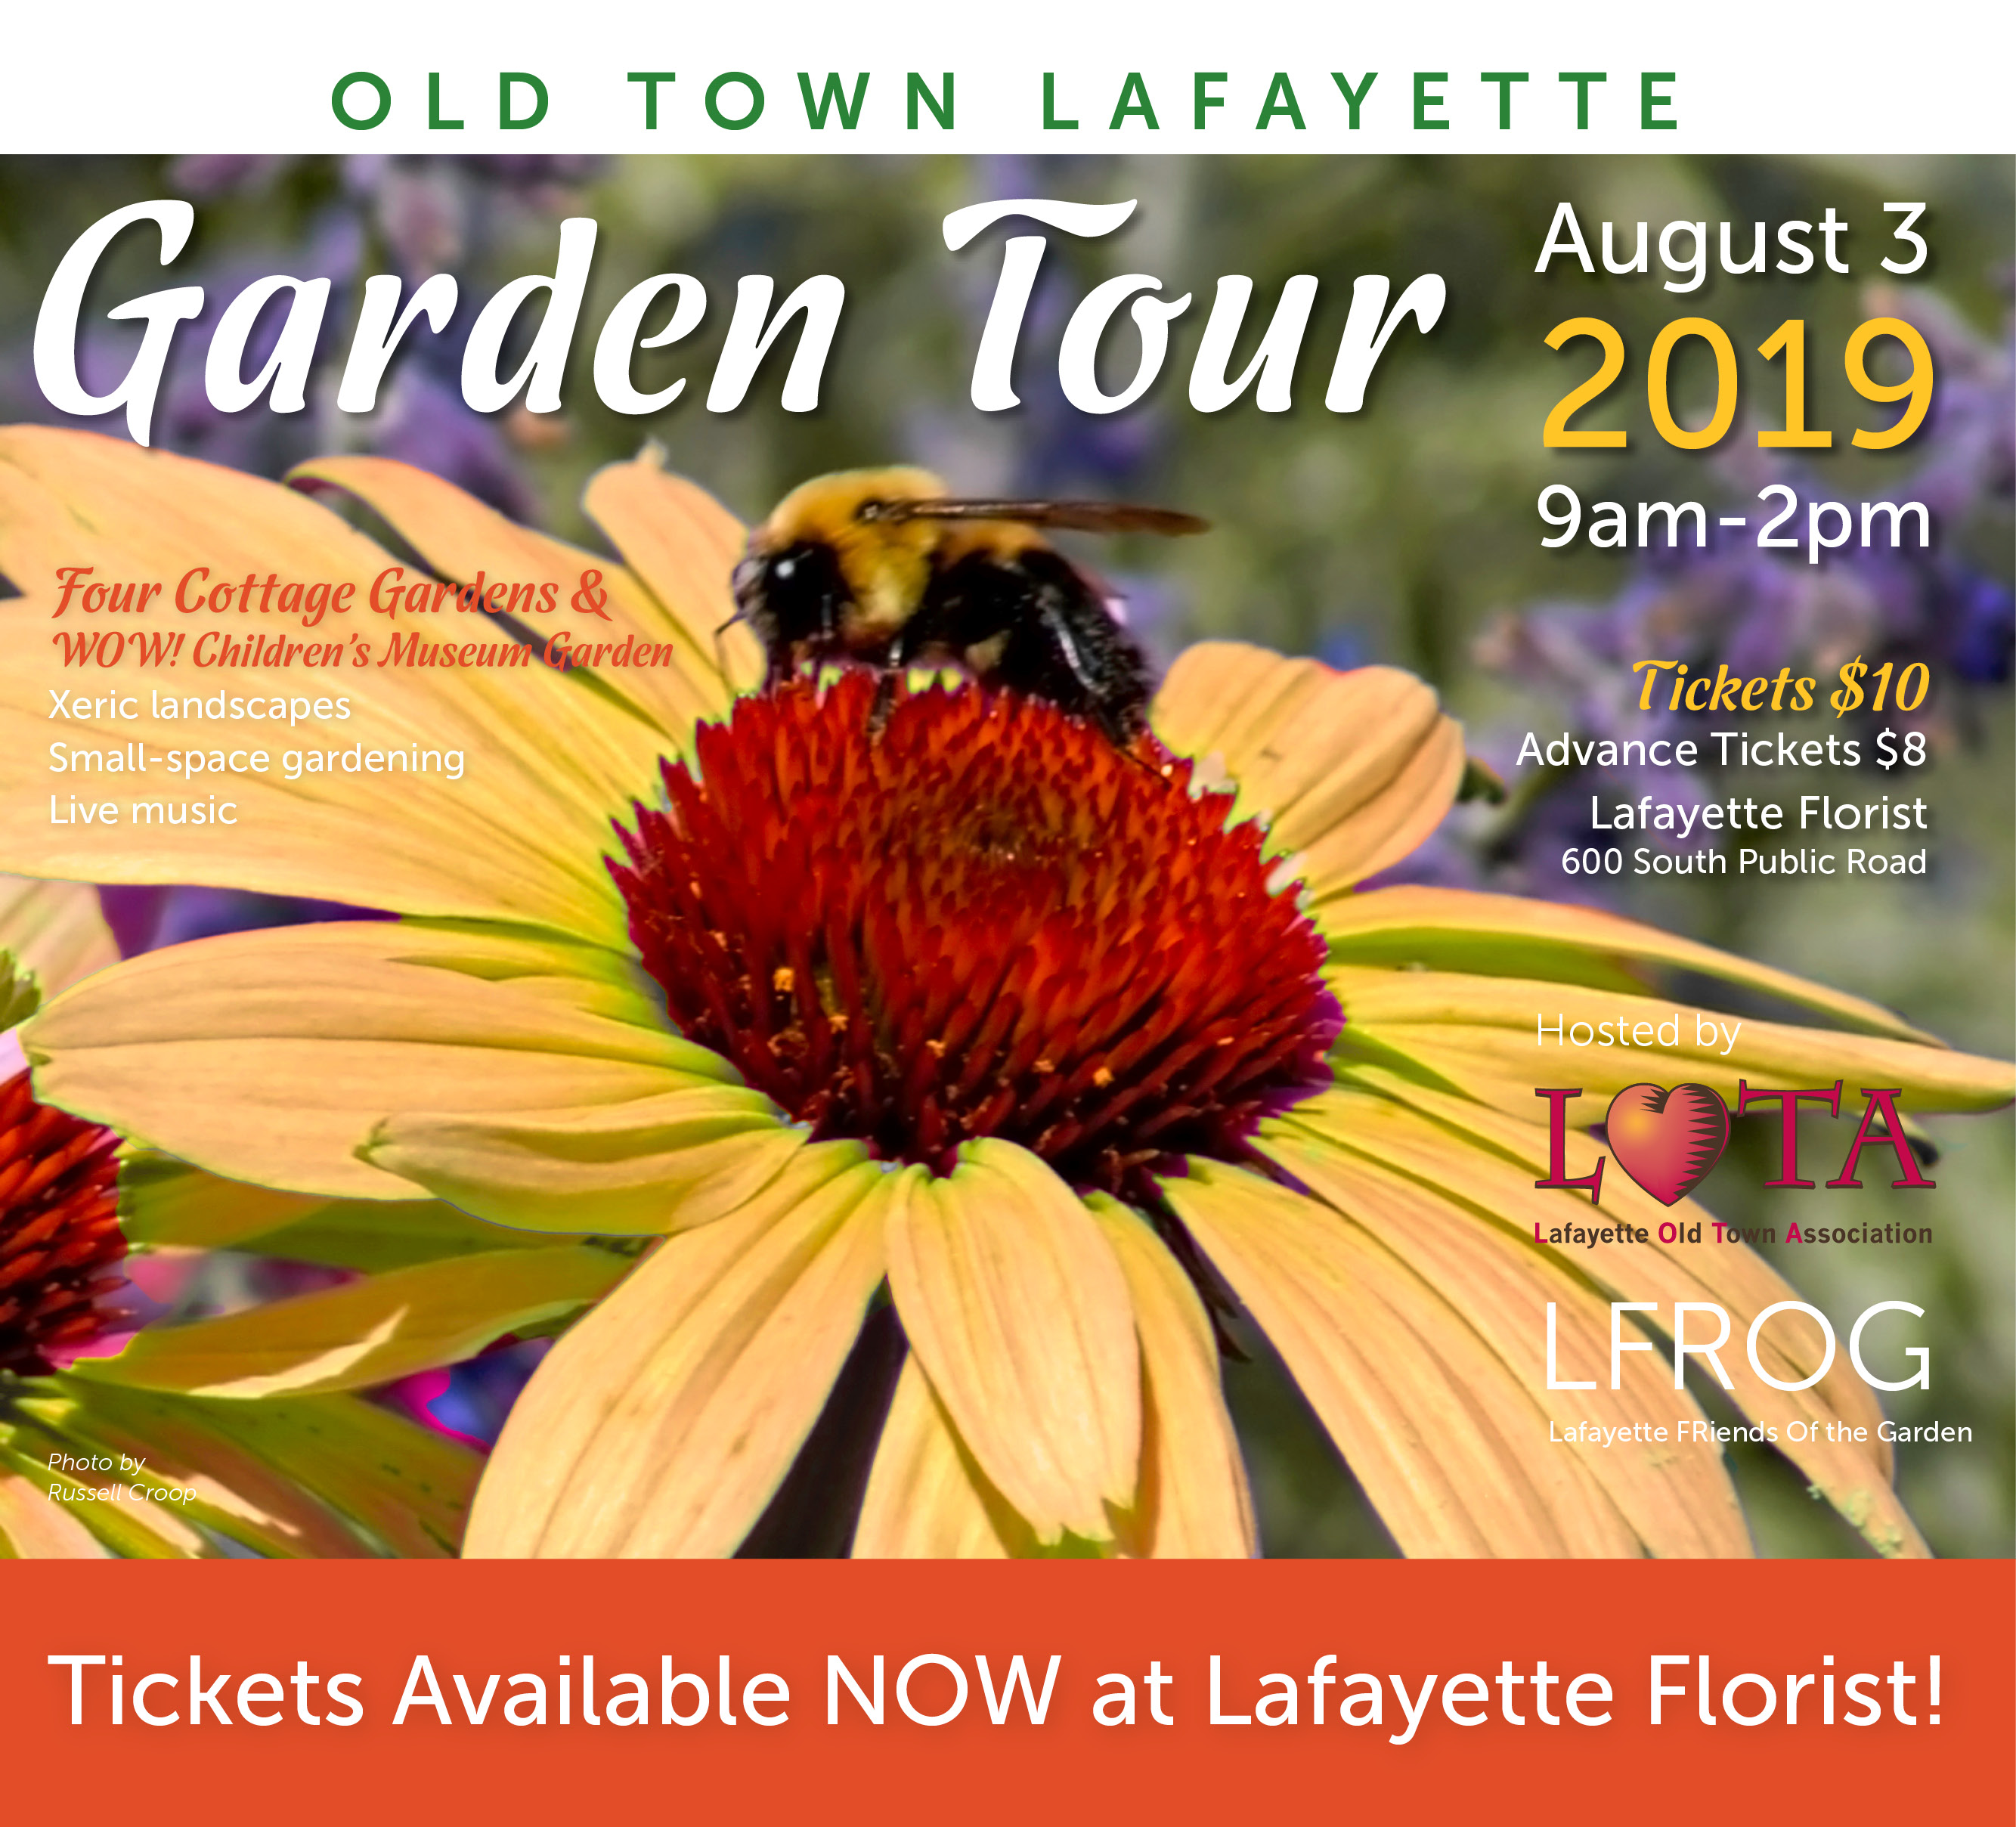 FB GardenTour19 Ad2Tickets